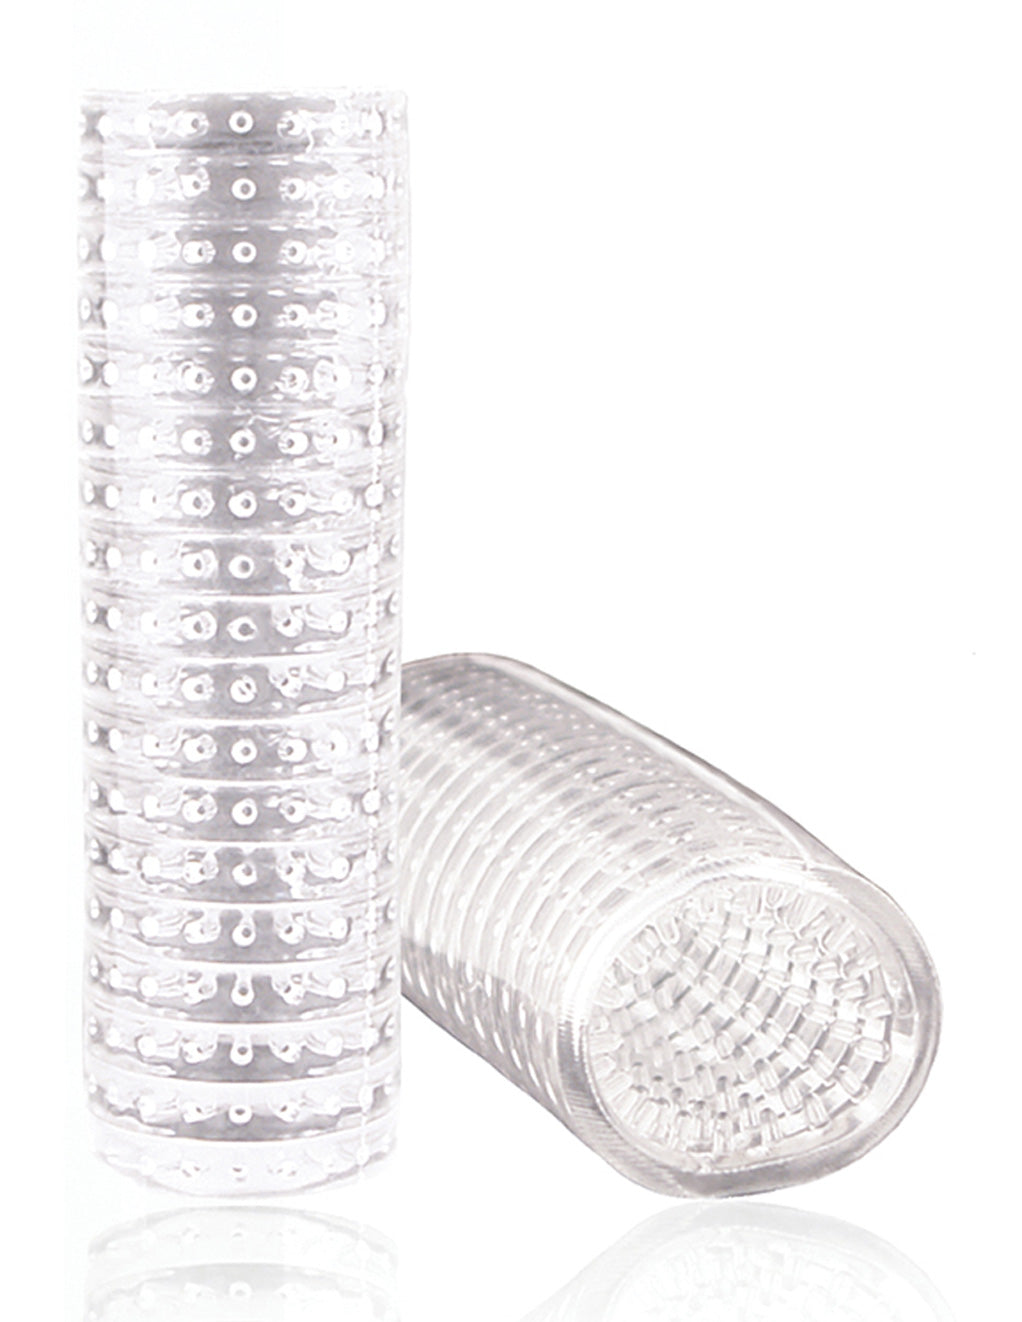 M For Men by Blush Novelties Stroke Sleeve Clear Masturbator Toy